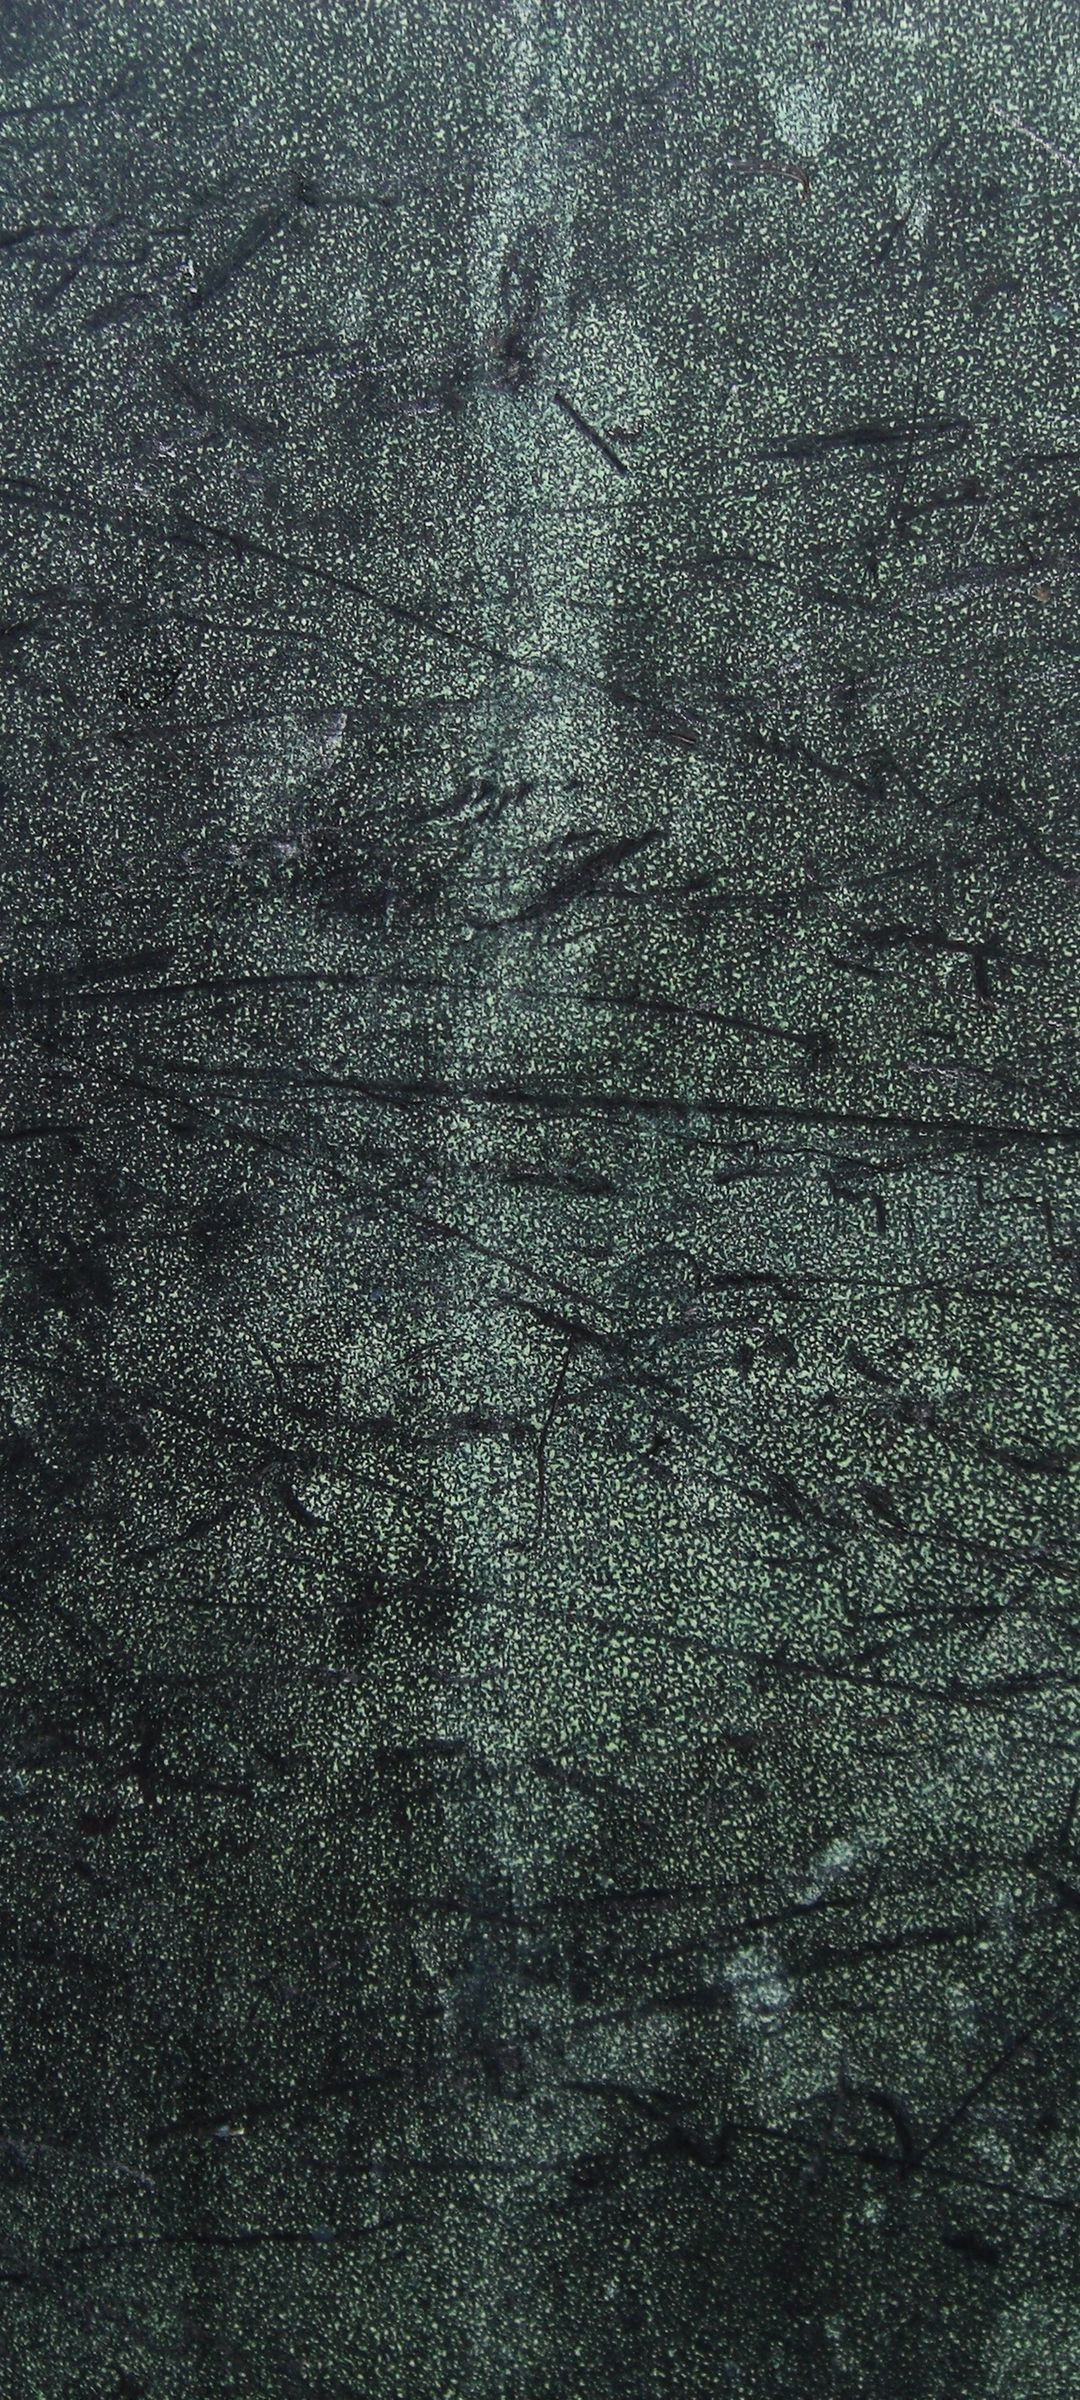 Sports Car Brands >> Surface Scratches Background Texture - [1080x2400]